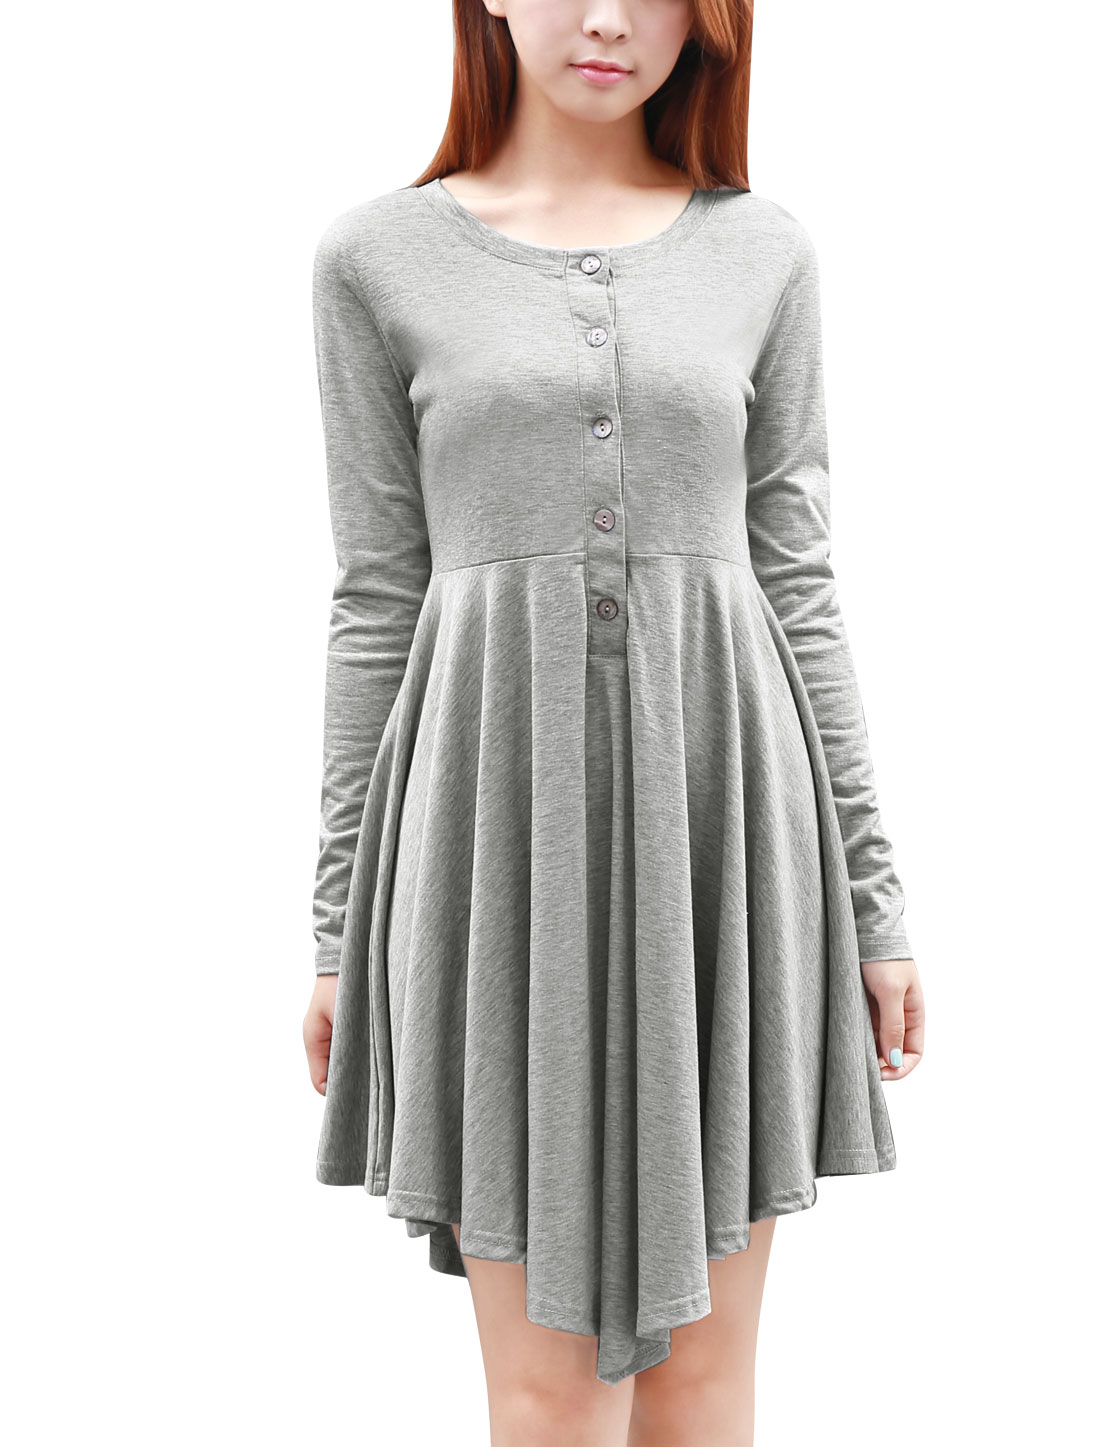 Women Autumn Buttons Closed Front Asymmetric Hem Casual Dress Gray L